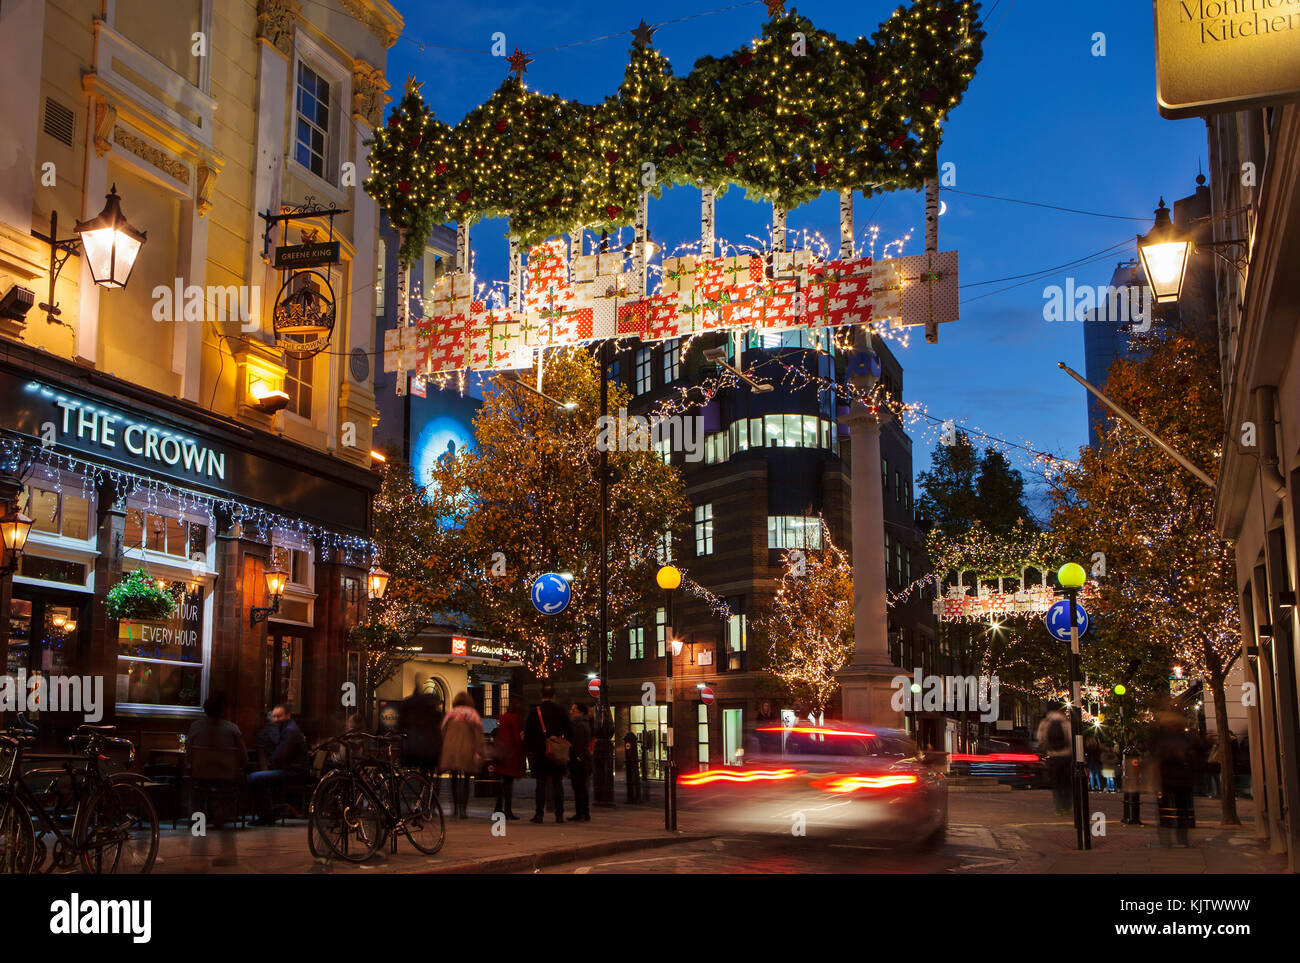 LONDON, UK - November 24th, 2017: Christmas lights on Seven Dials; seasonal lights are being displayed over busy - Stock Image